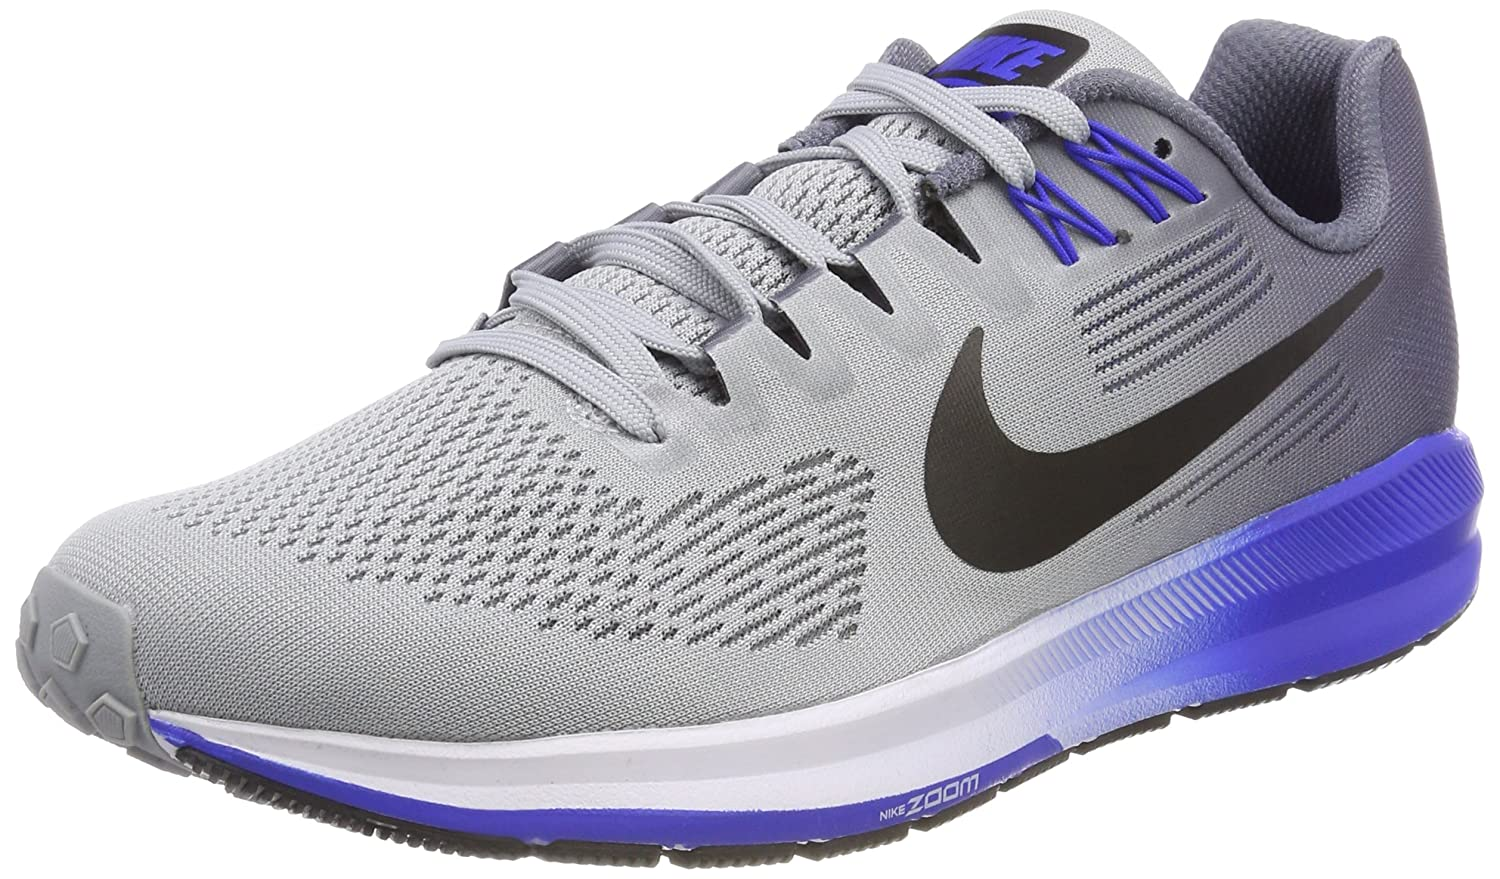 faf99ababd5f Nike Men s Air Zoom Structure 21 Running Shoe Wolf Grey Black-Light  Carbon-Hyper Royal 11.0  Buy Online at Low Prices in India - Amazon.in